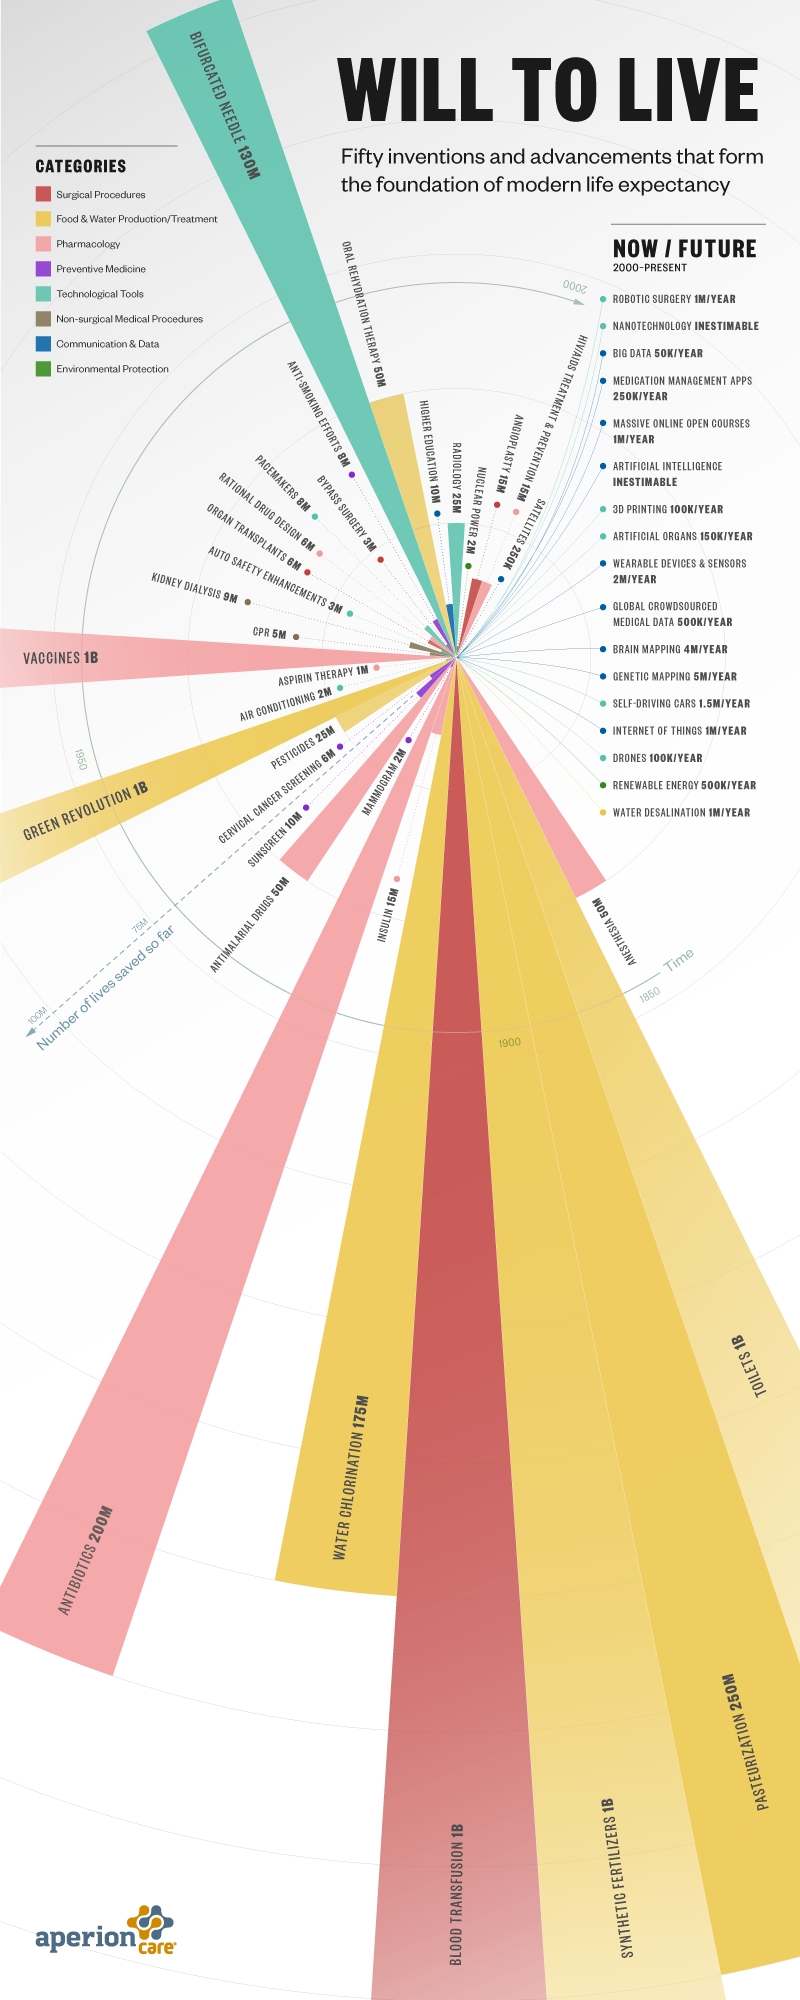 Inventions drive modern life expectancy #infographic